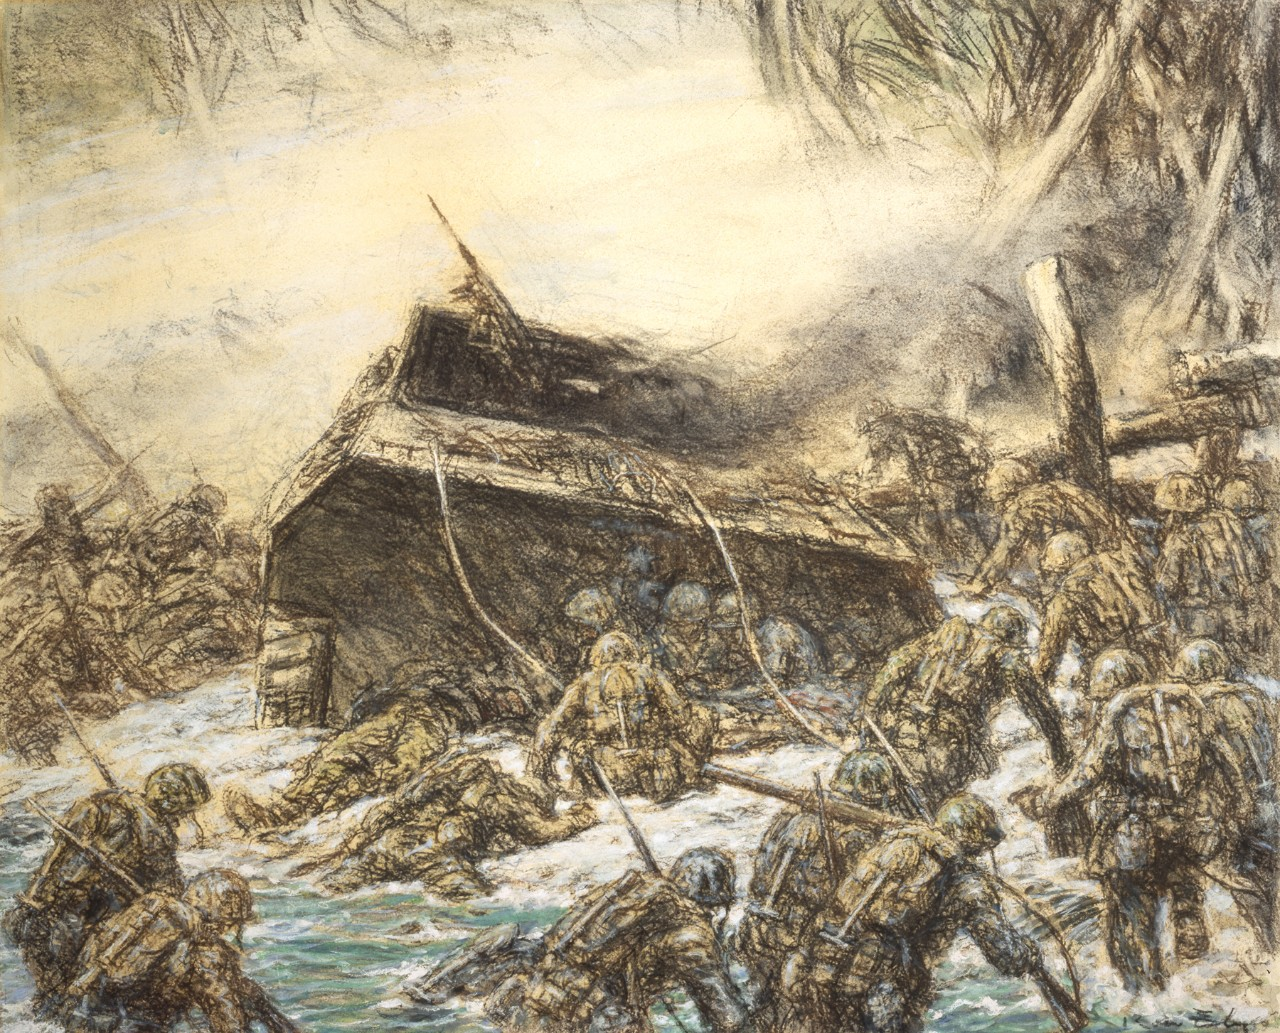 Beachhead Scene, Marines at Tarawa